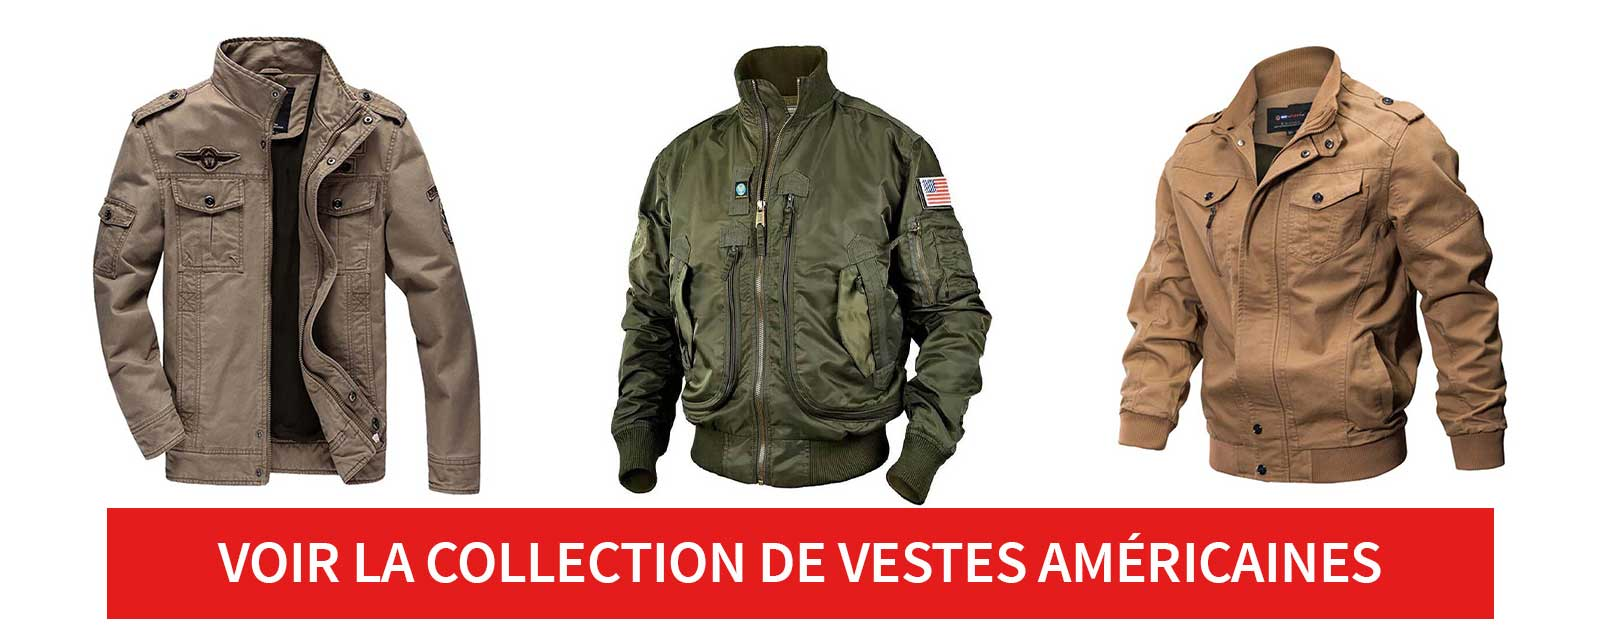 collection vestes americaines